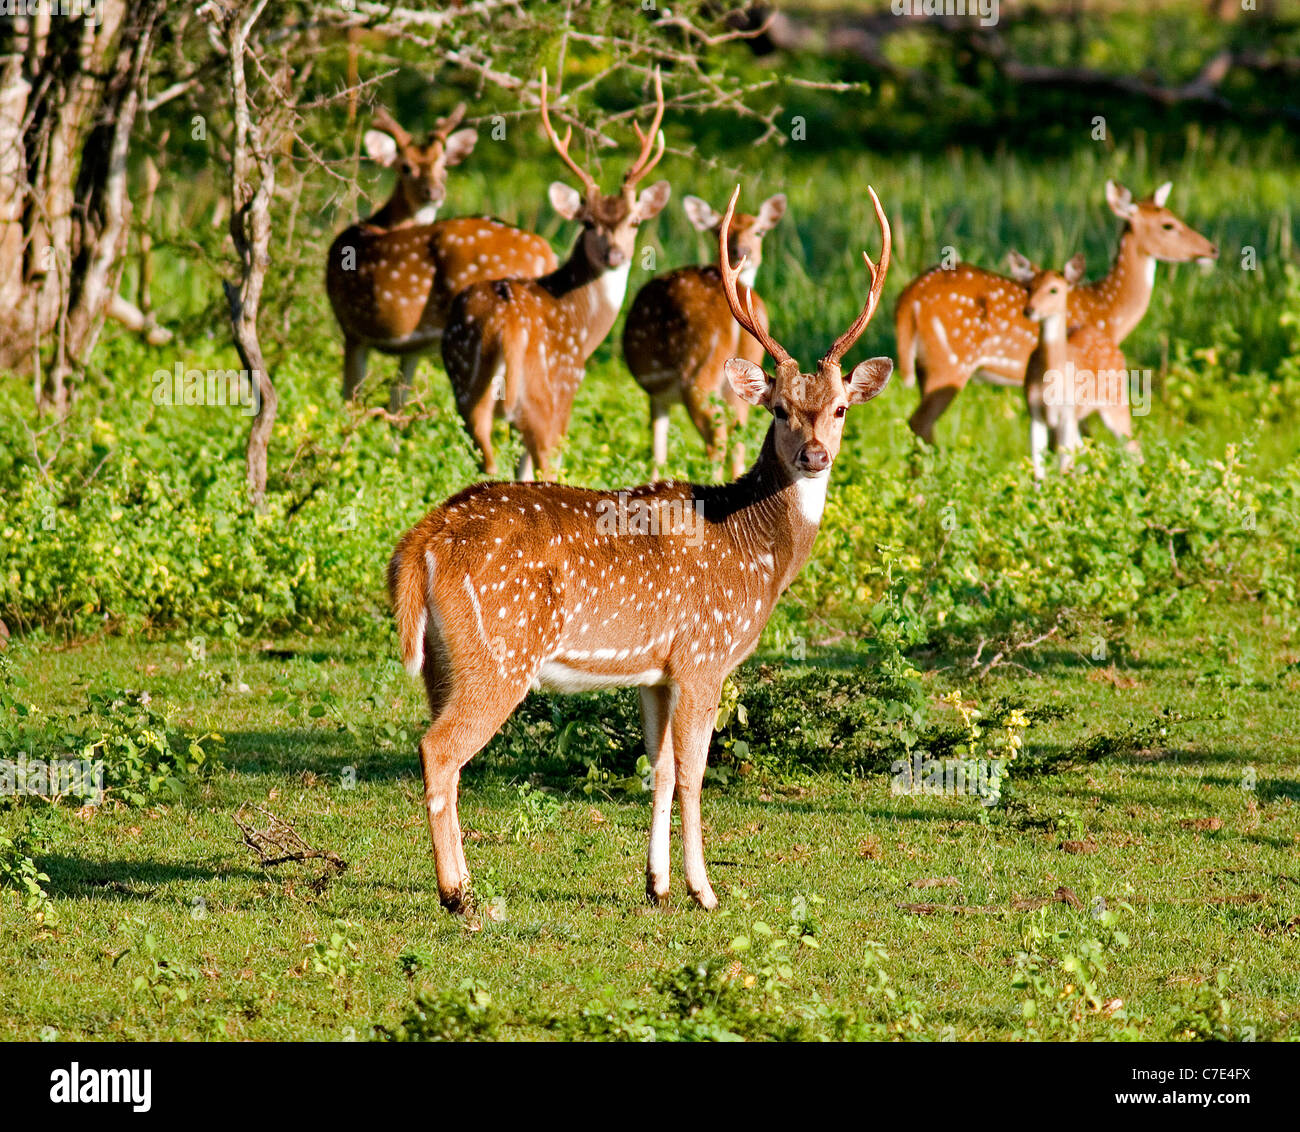 Spotted deer Axis axis Sri Lanka Photo Stock